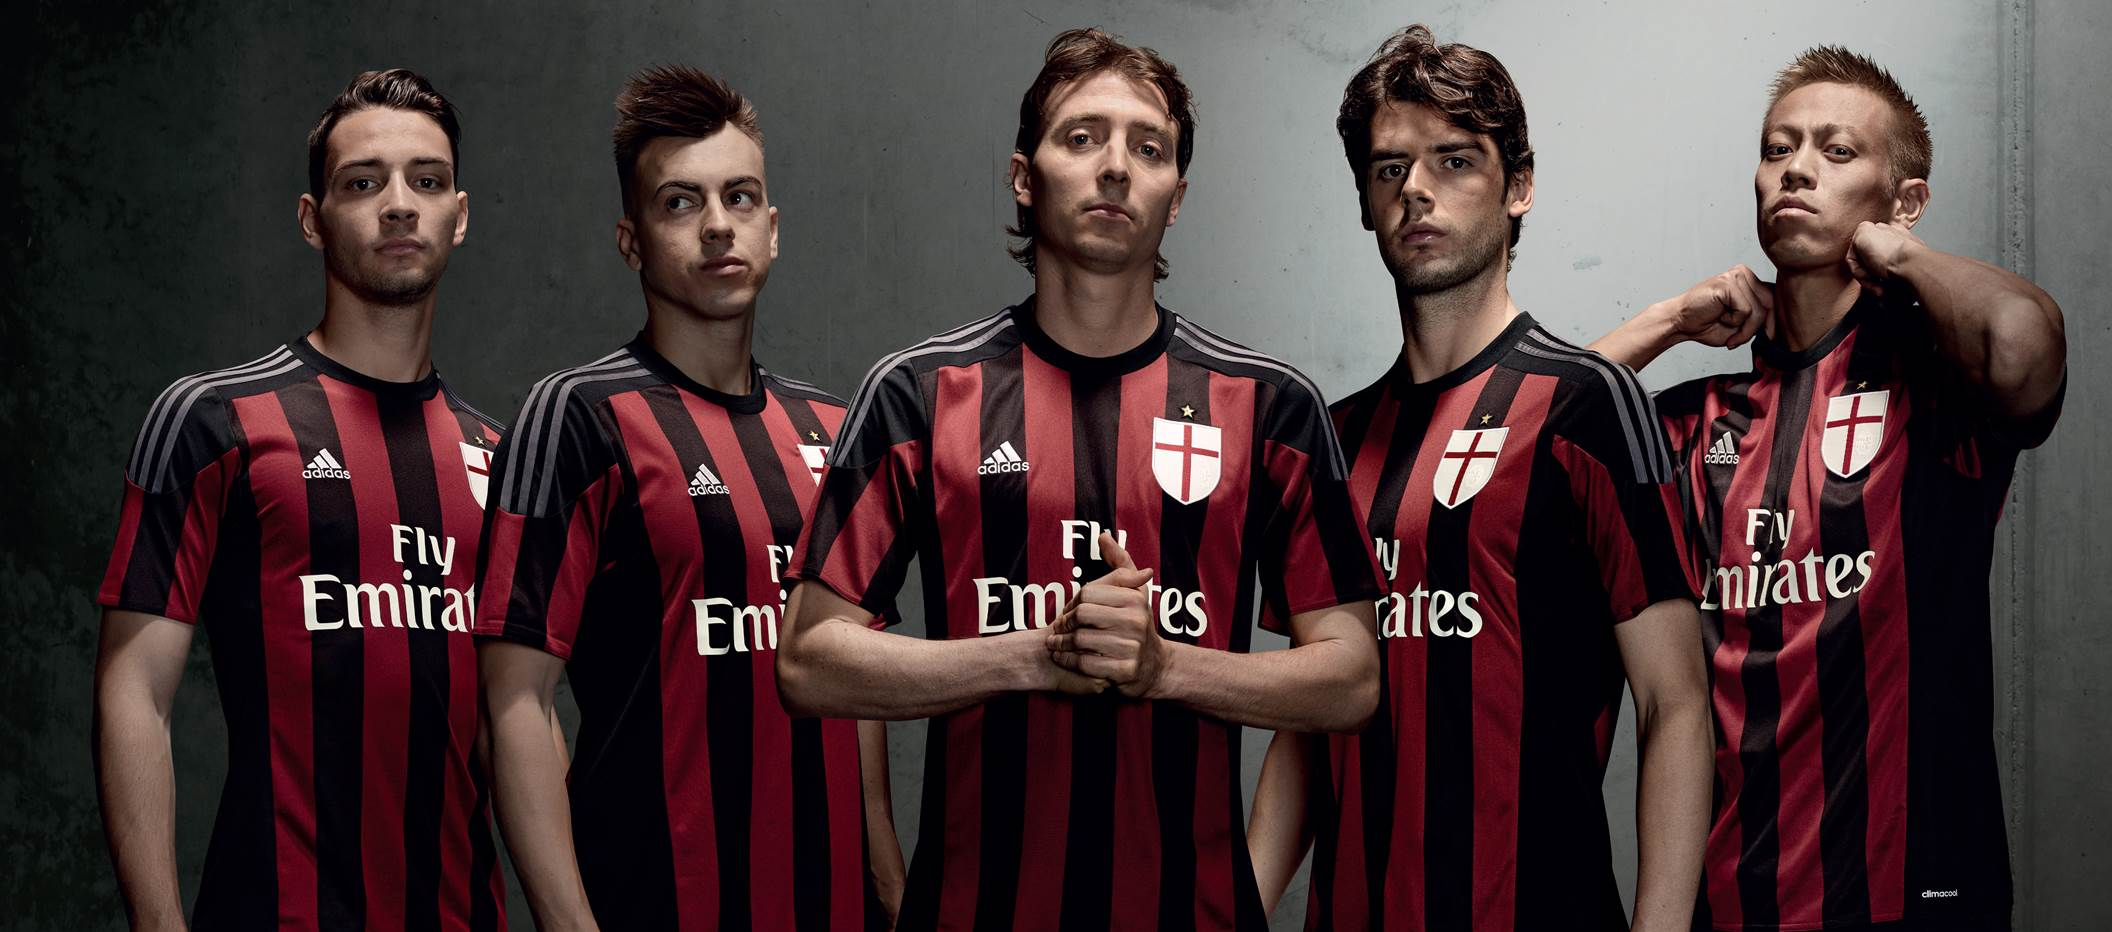 dd803dc7e85 AC Milan Launches New 2015 16 Home Jersey - SoccerNation